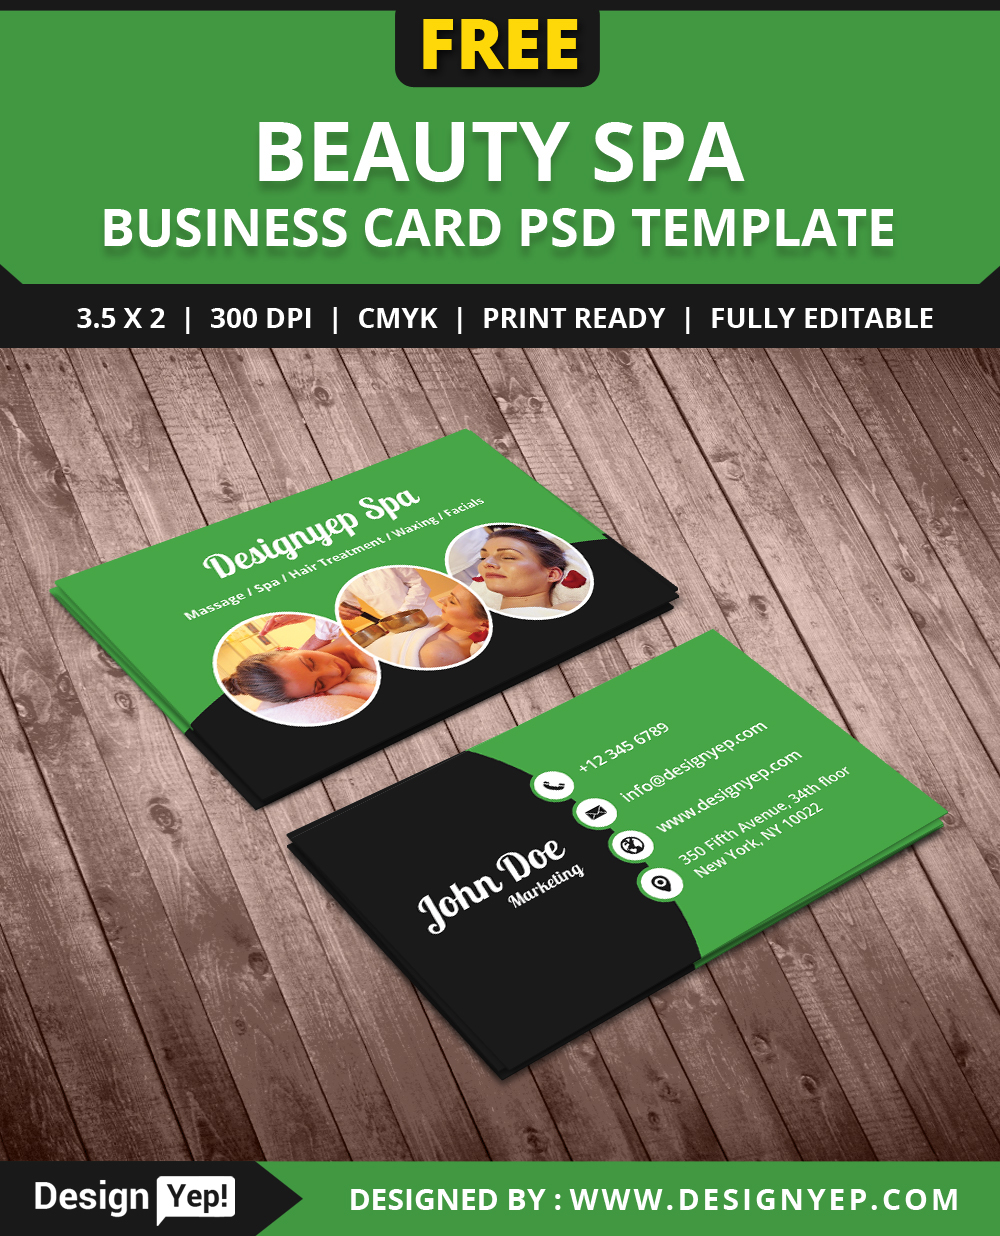 Free beauty spa business card psd template on behance fbccfo